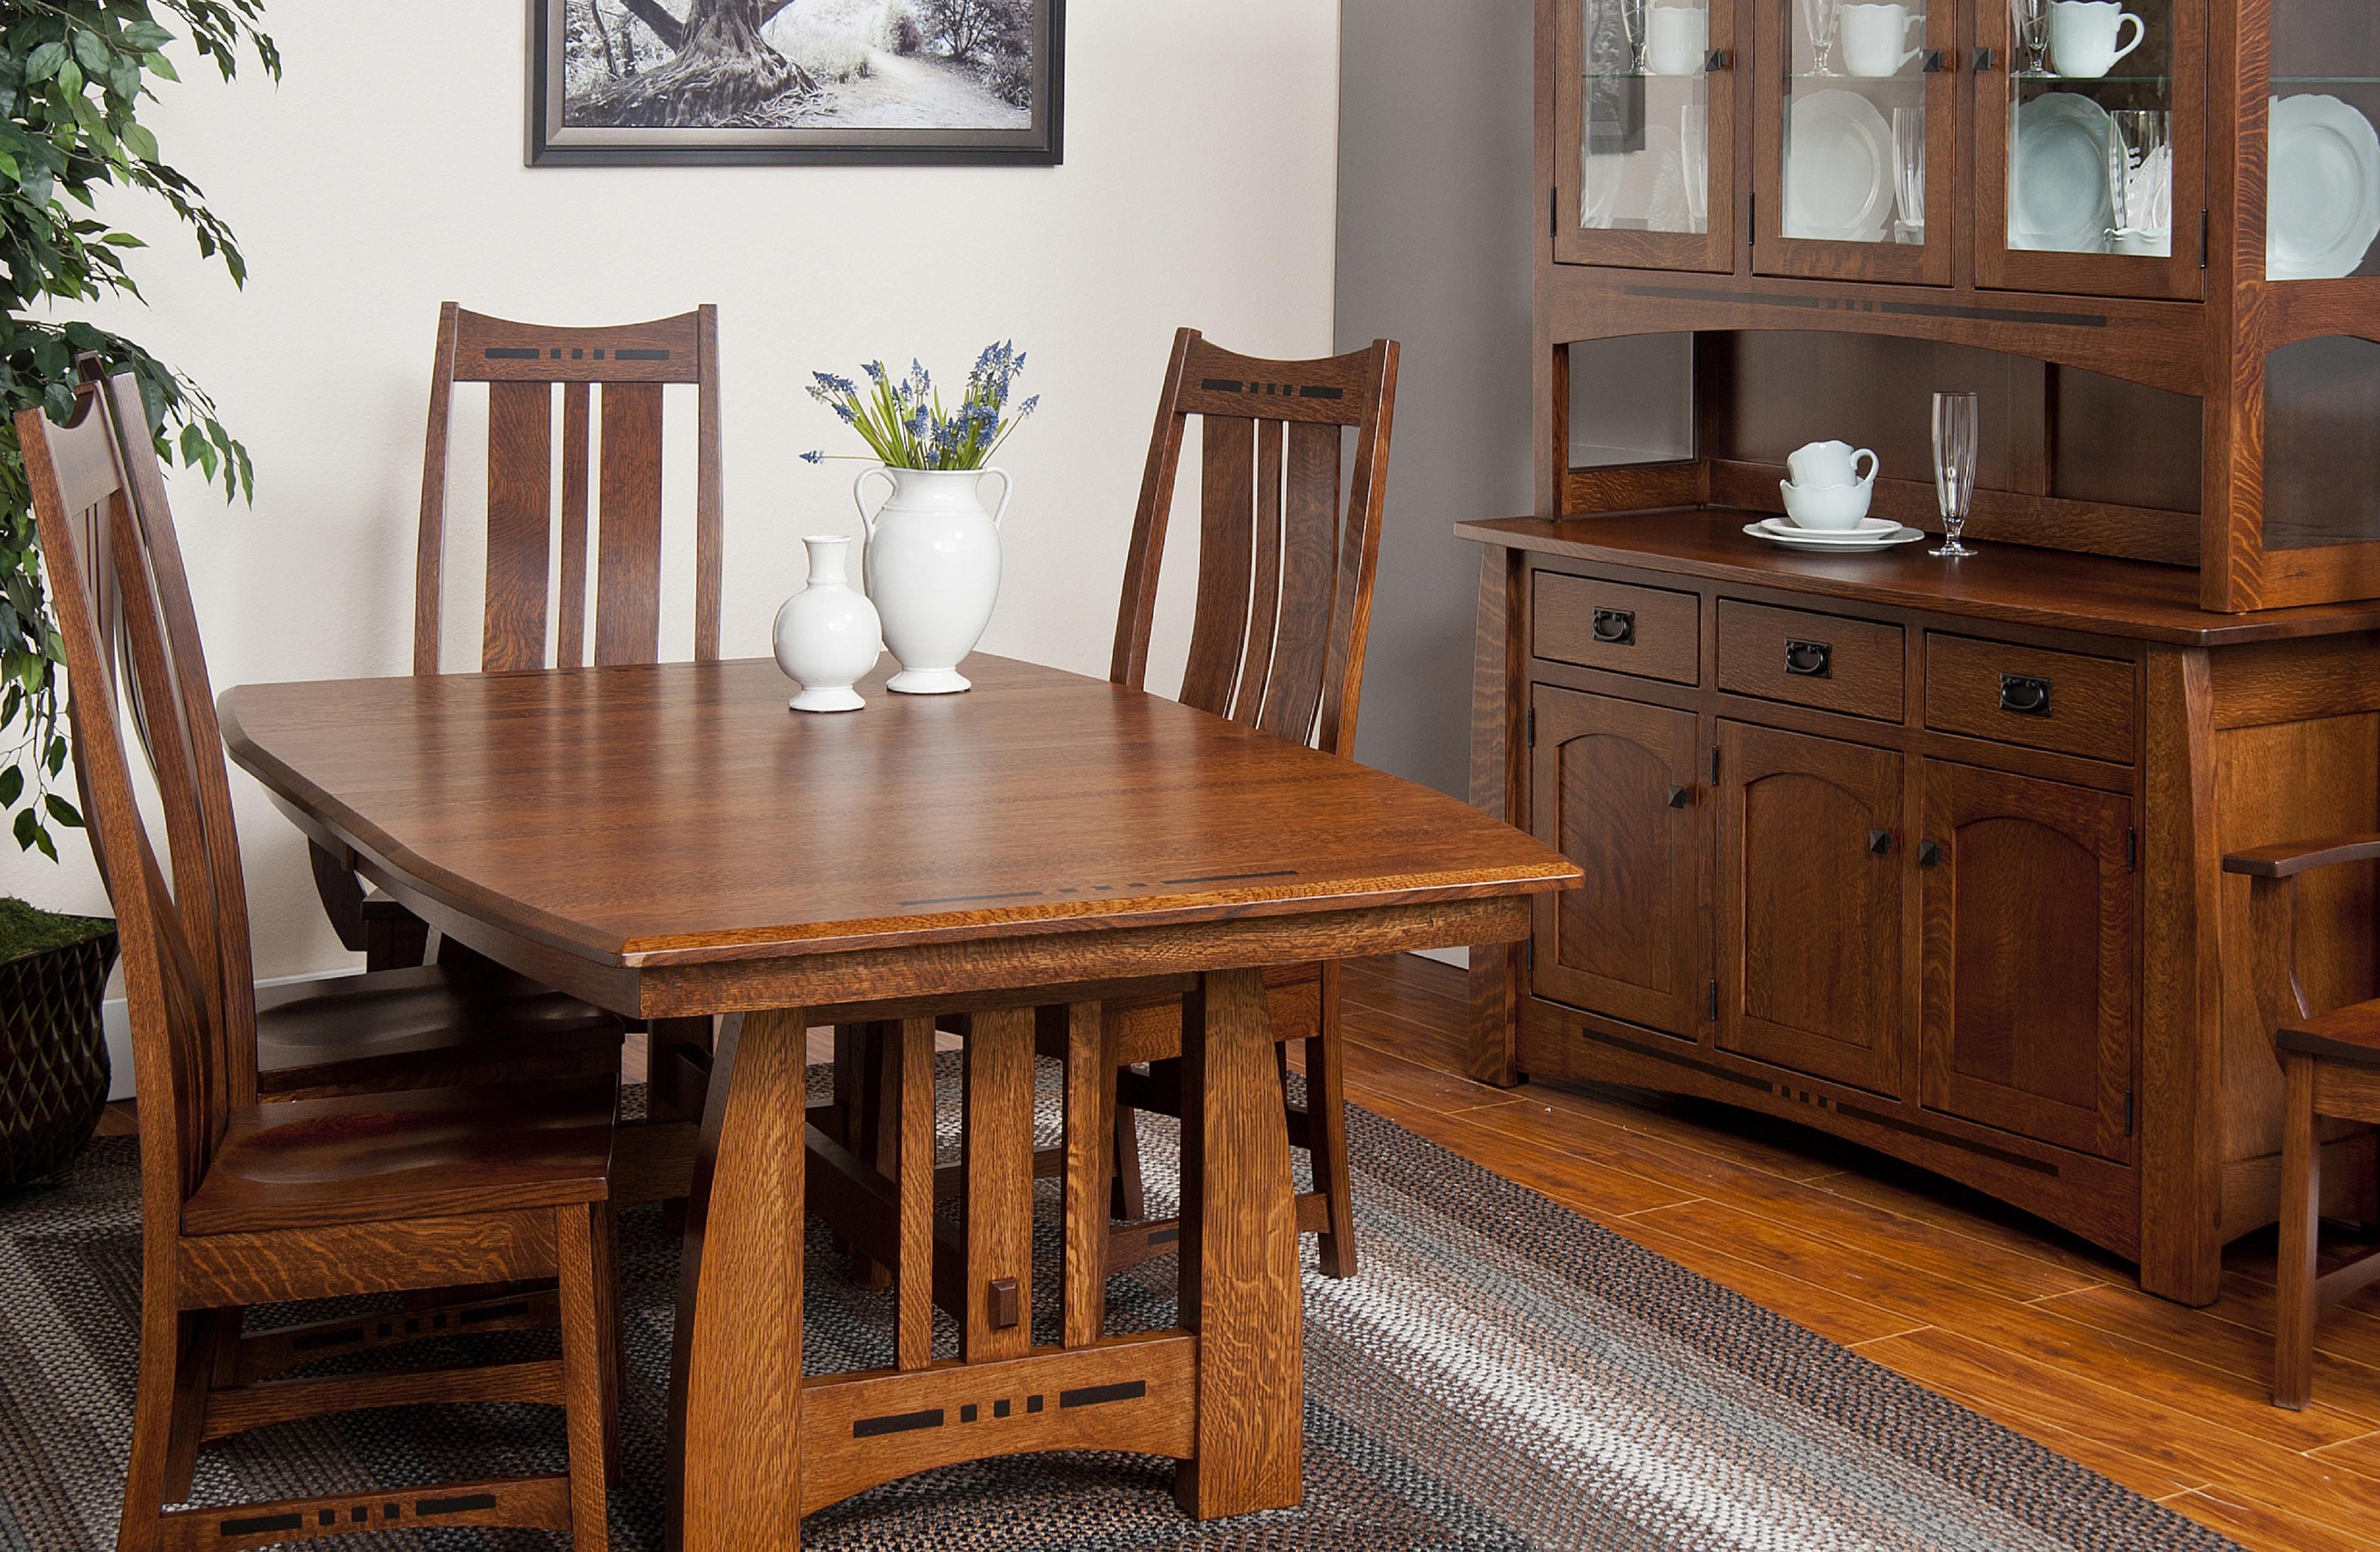 Indiana Amish Owen Amish Dining Table with two 12 leaves